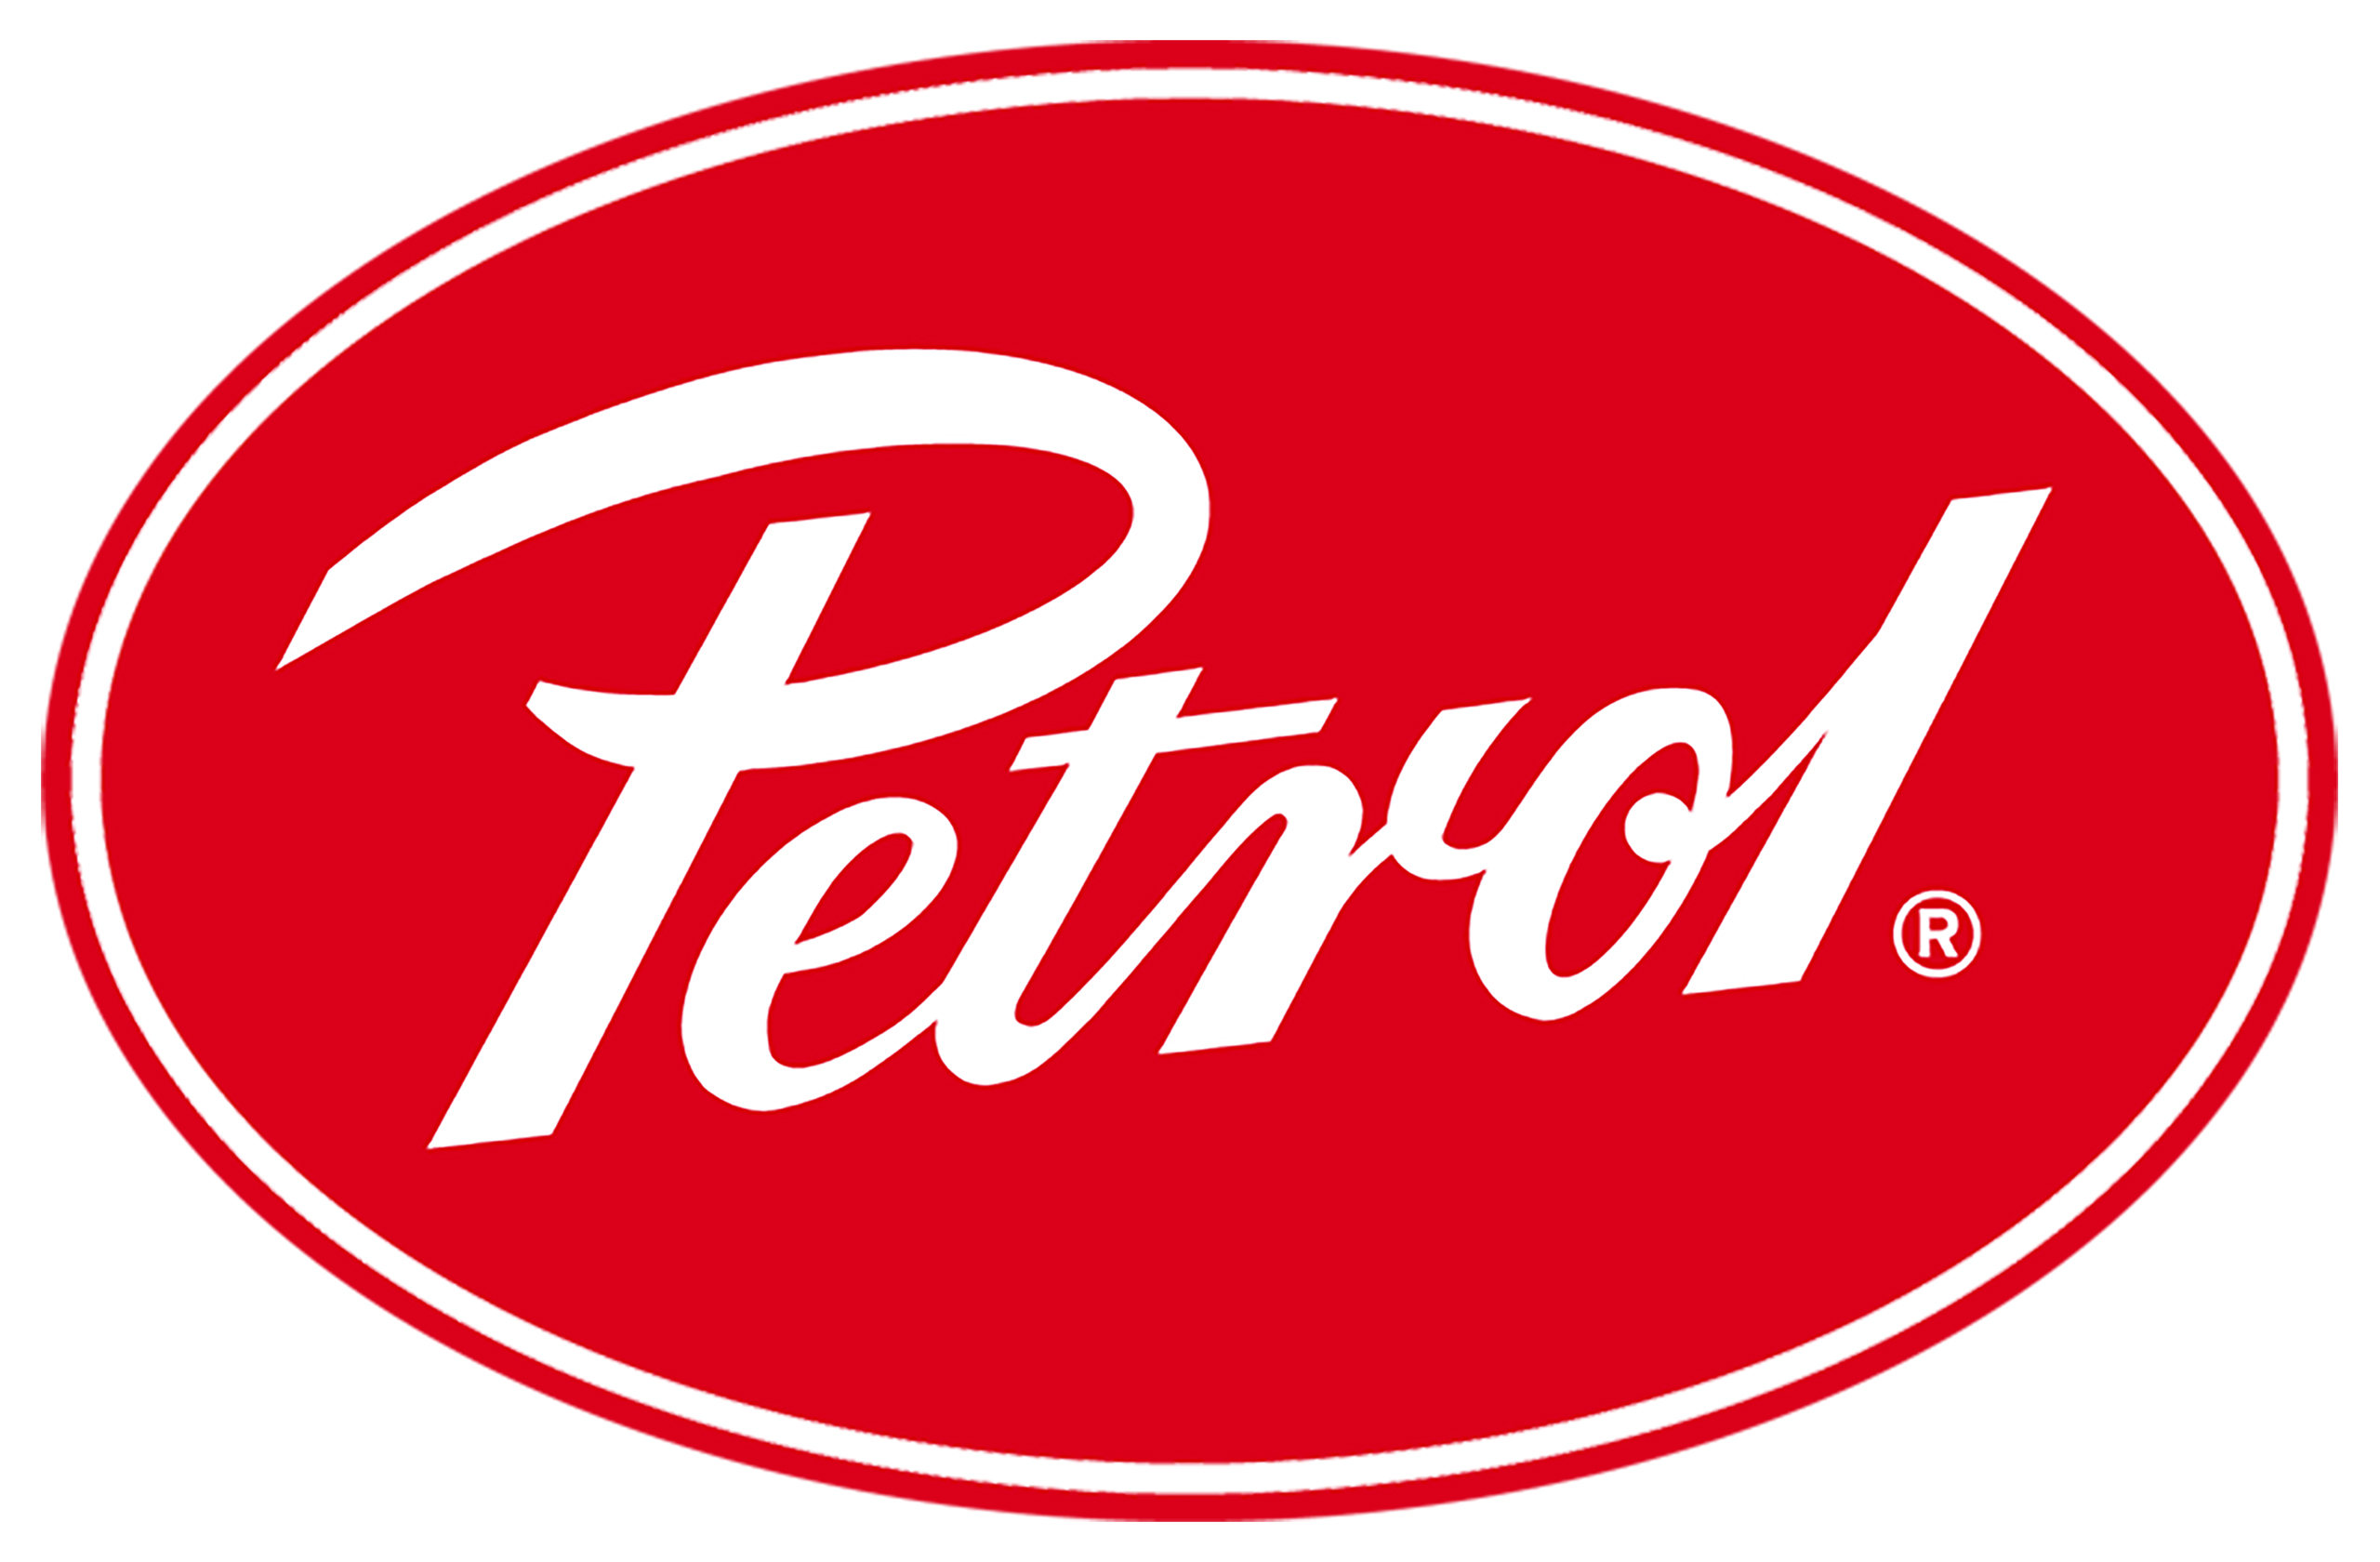 Petrol Industries BV